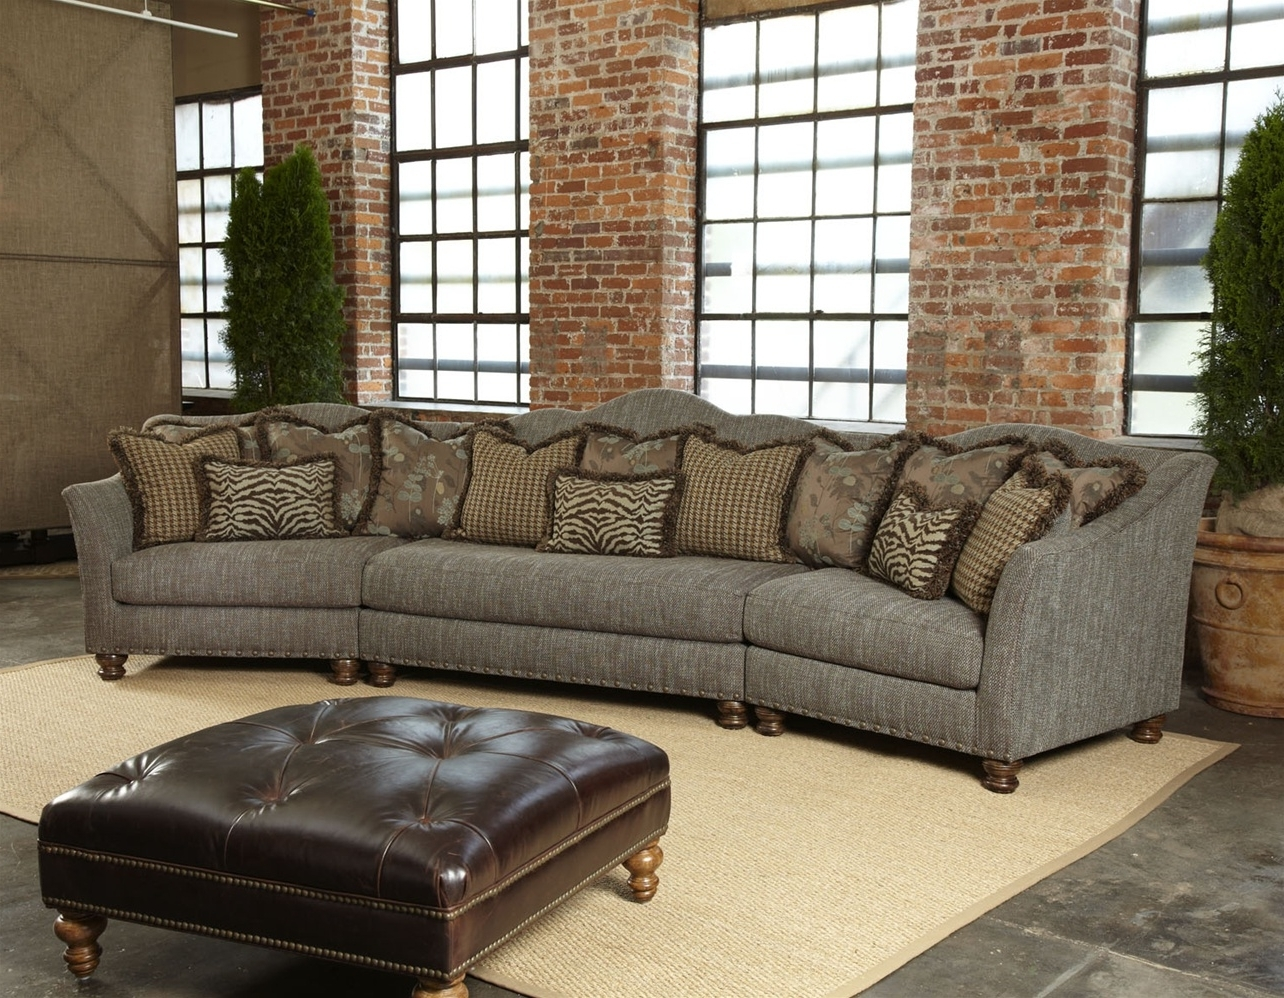 High End Sofas With Regard To Current High End Furniture (View 7 of 15)